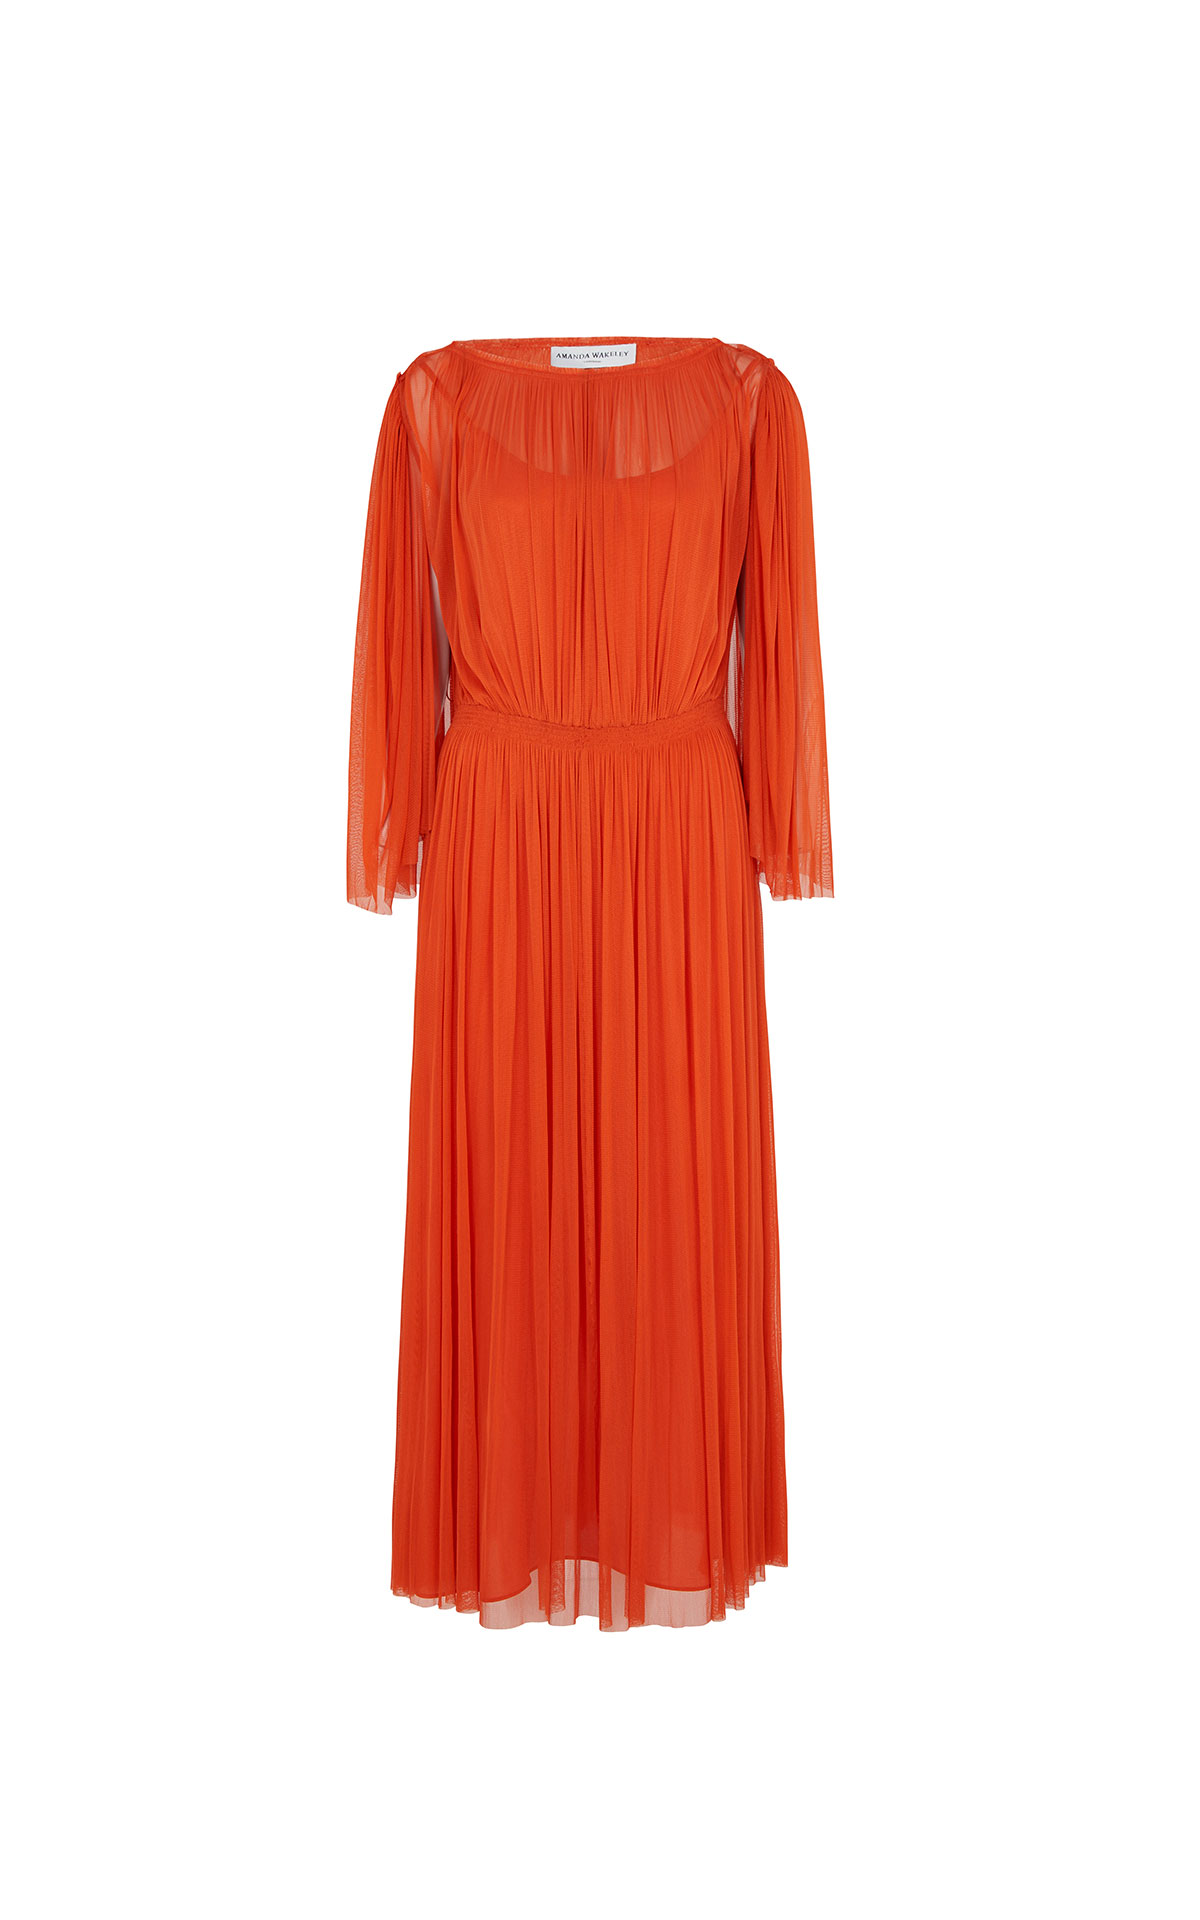 Barefoot Chic Amanda Wakeley Papaya silk tulle midi dress from Bicester Village